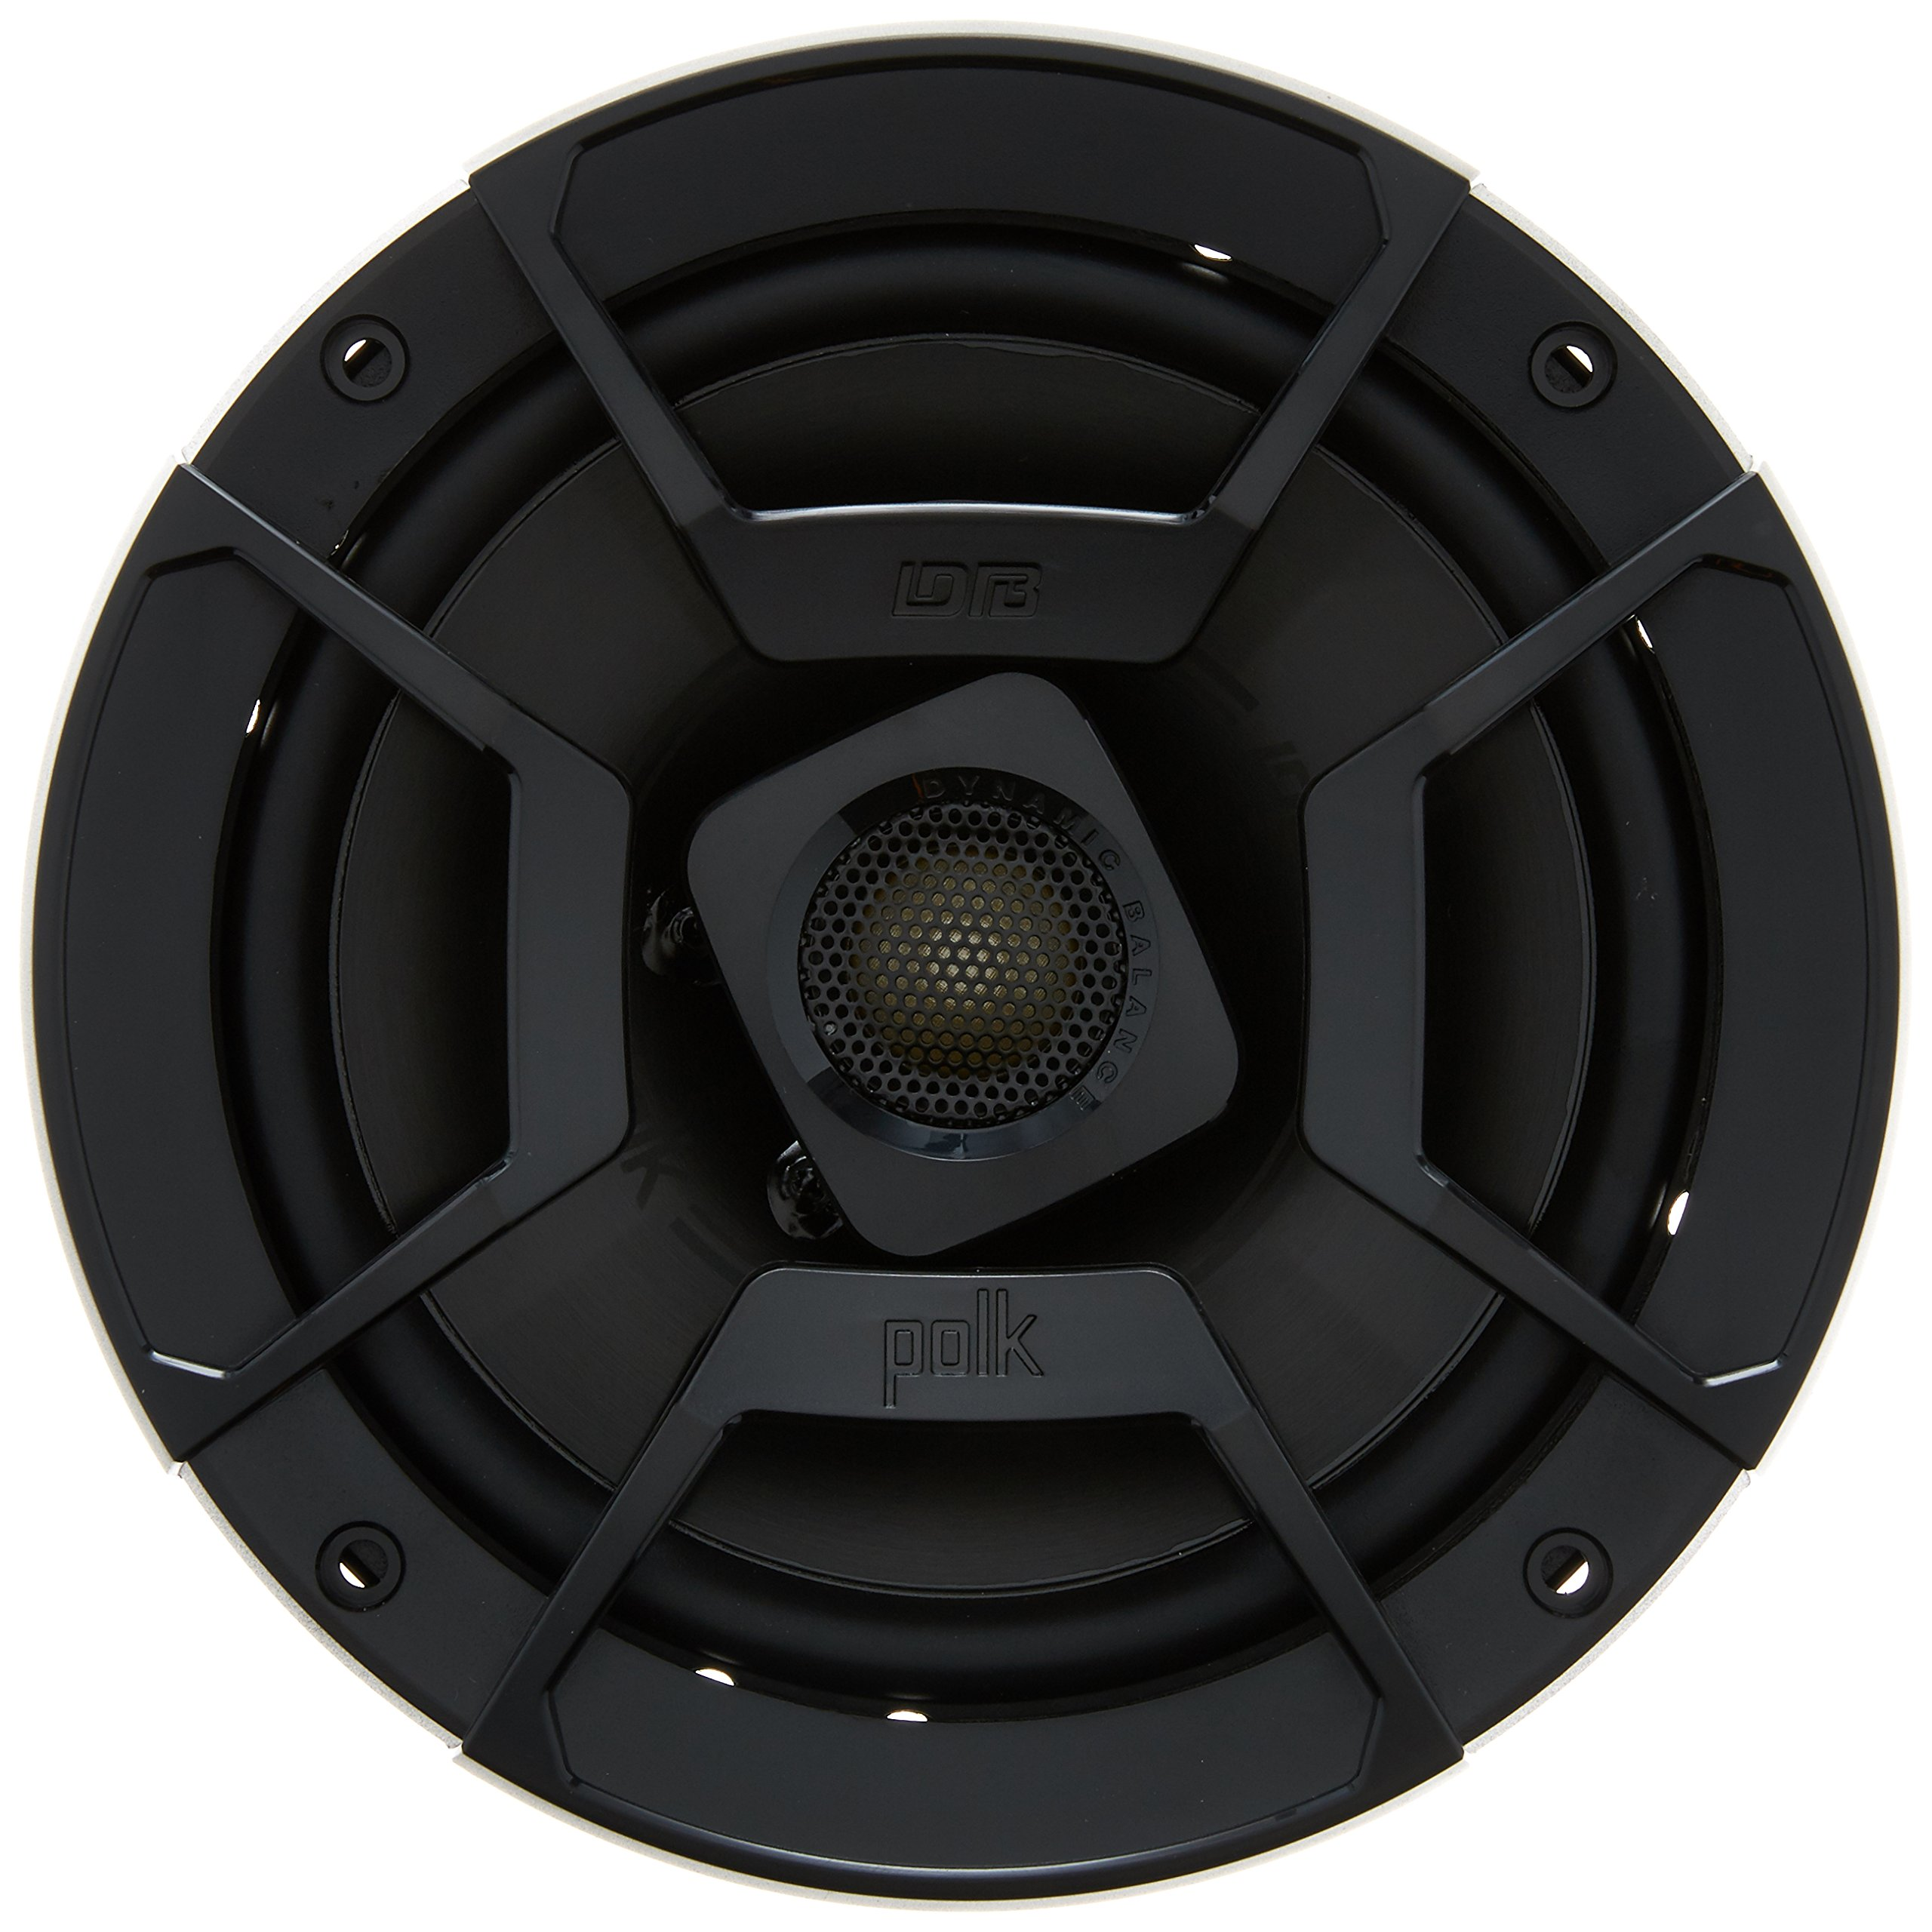 Polk DB652 UltraMarine Dynamic Balance Coaxial Speakers, 6.5'' - Pair